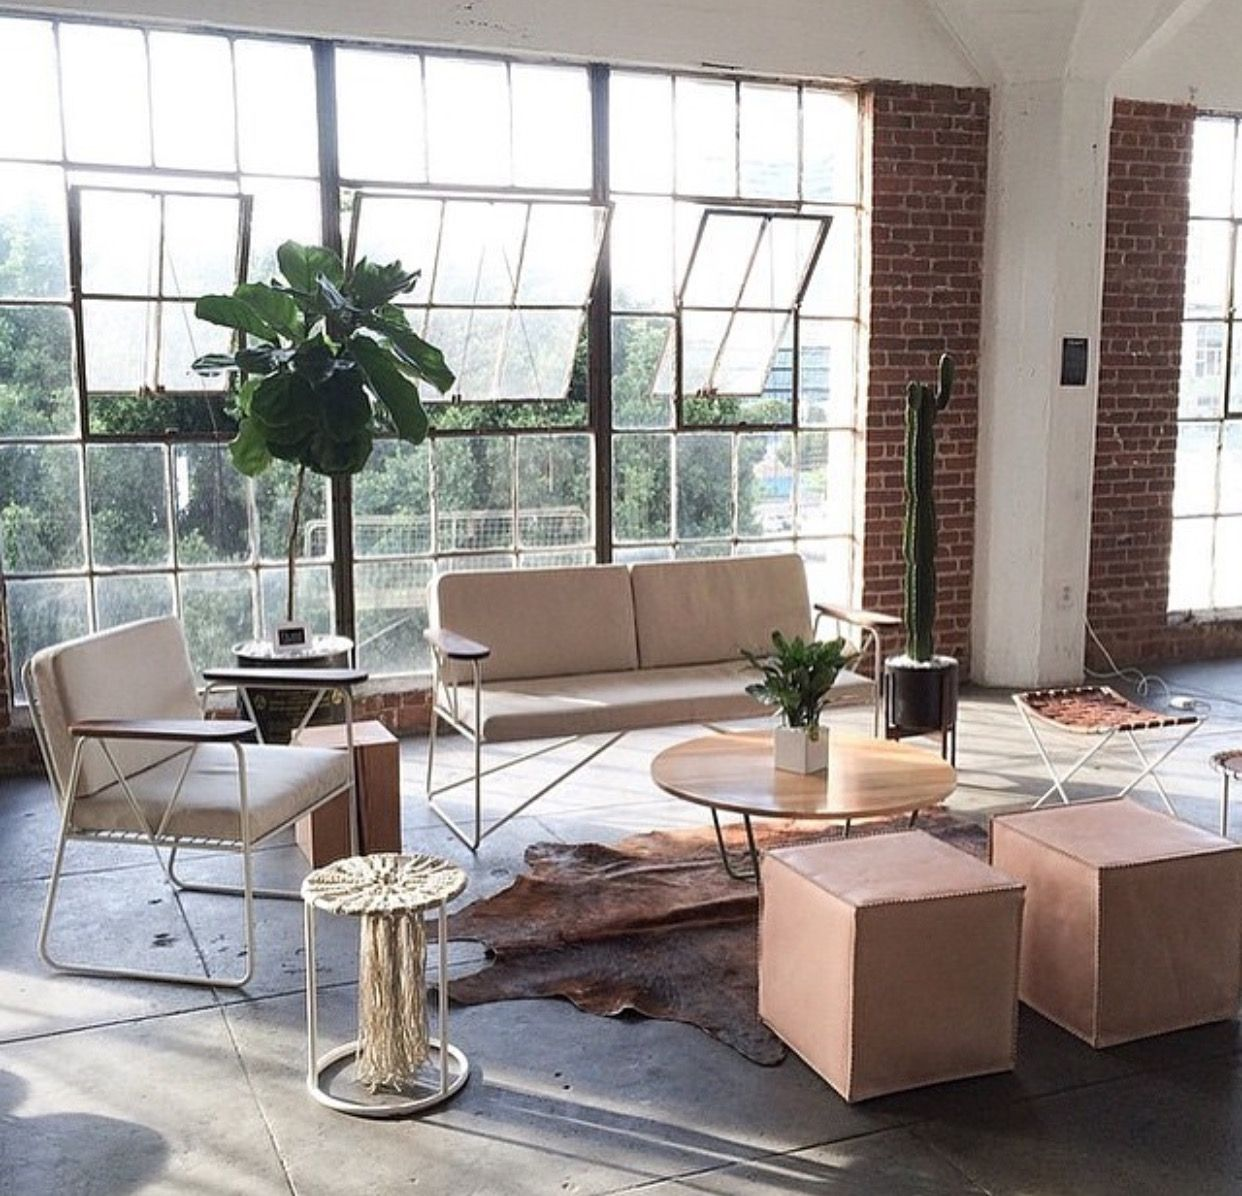 Haus-tempel-design-interieur pin by cassie ouconnor on house  pinterest  house